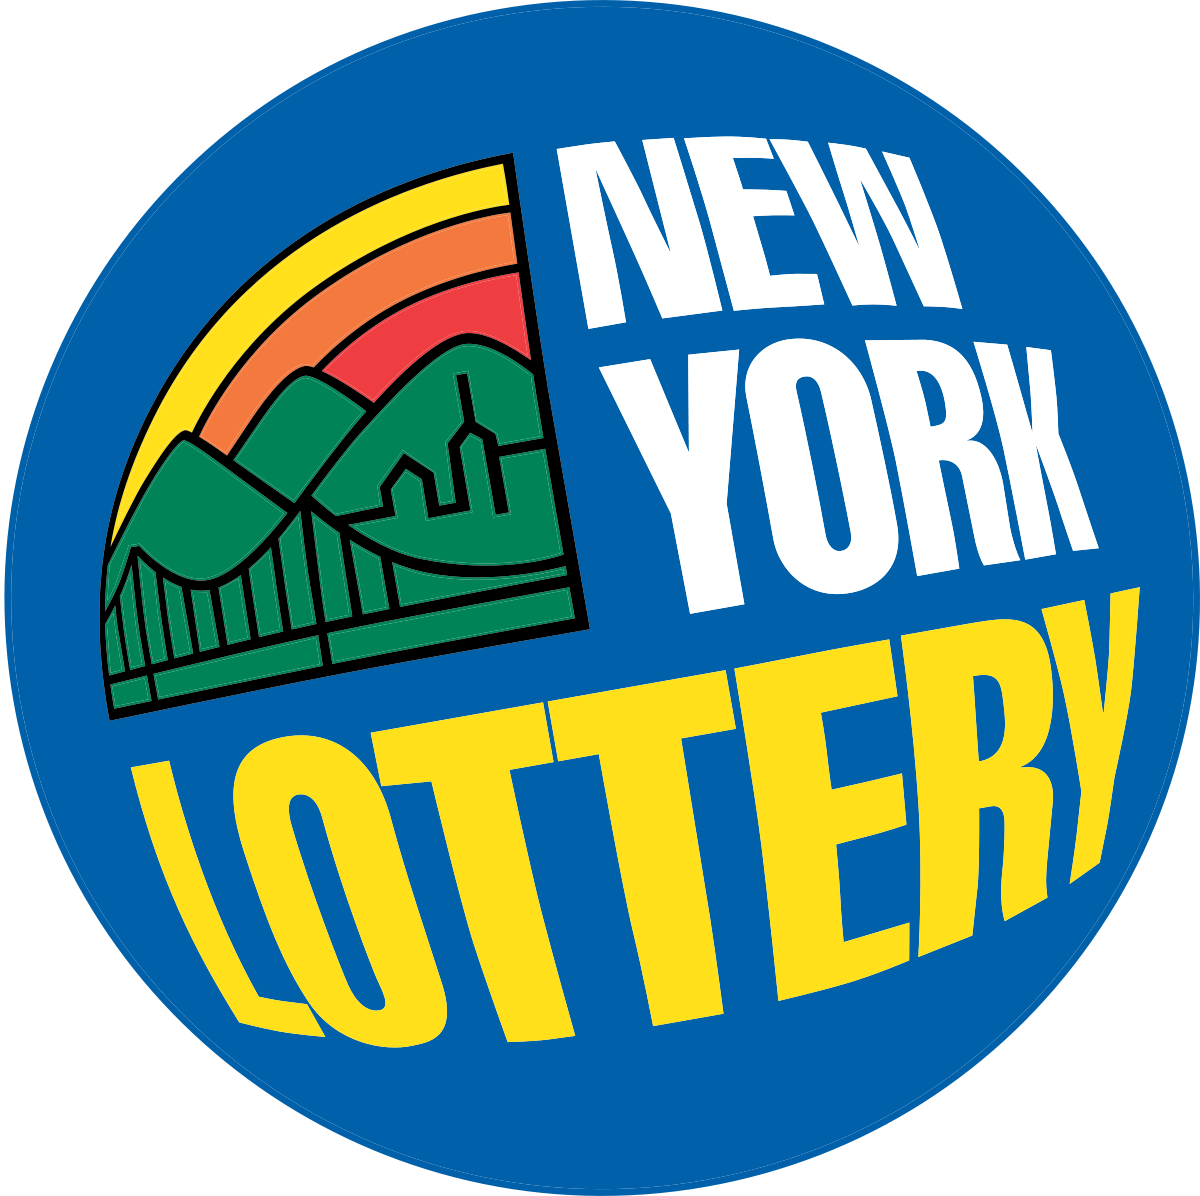 Ticket svg drawing. New york lottery wikipedia